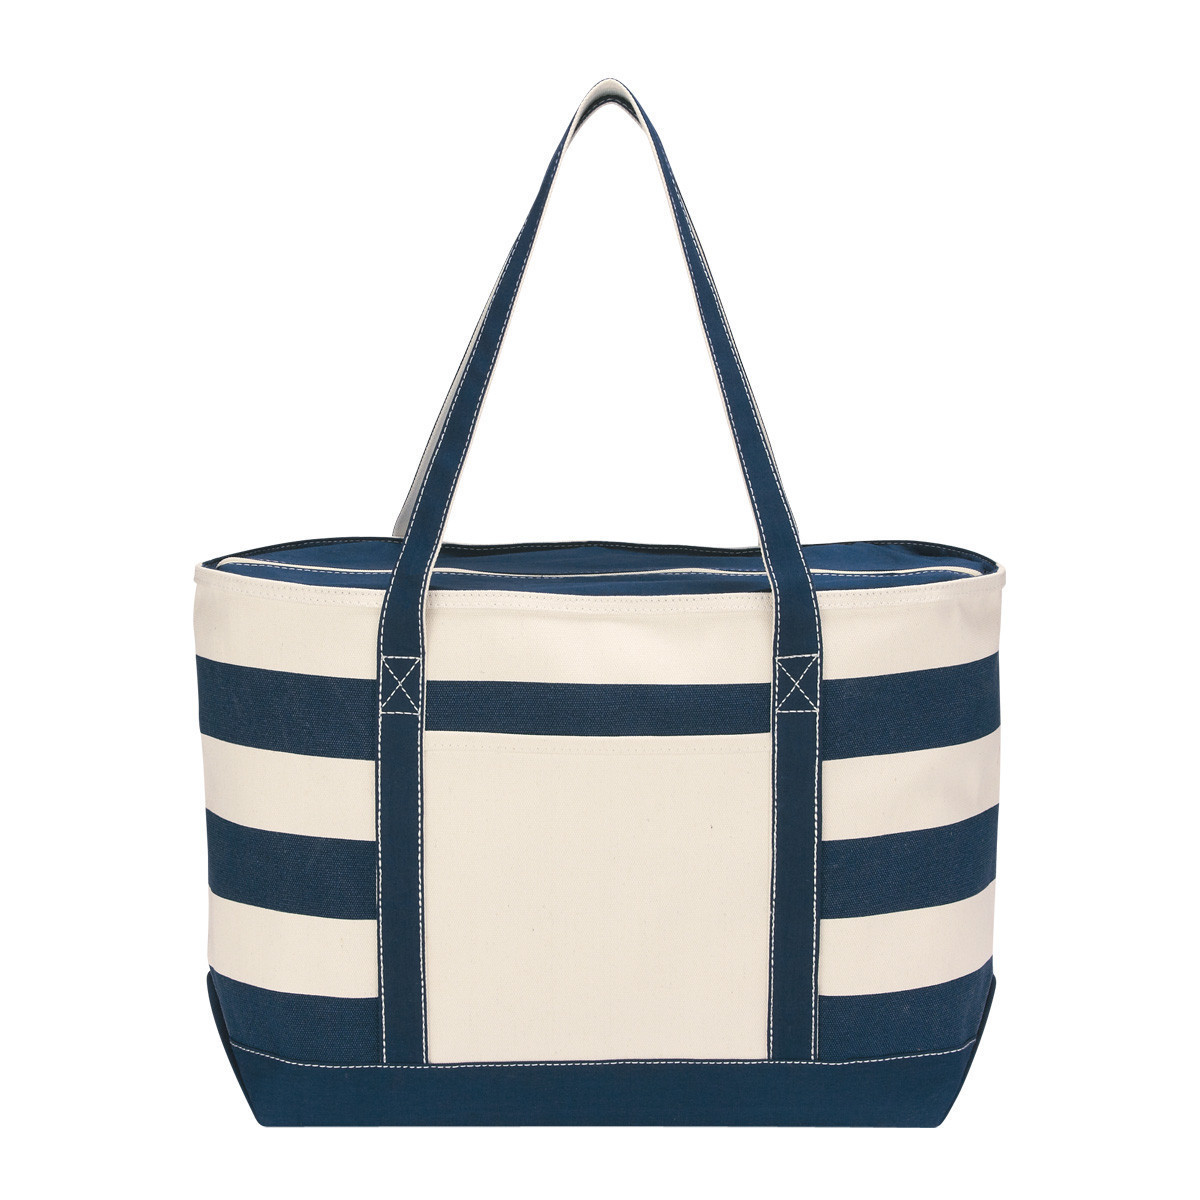 travel totes - simply bags